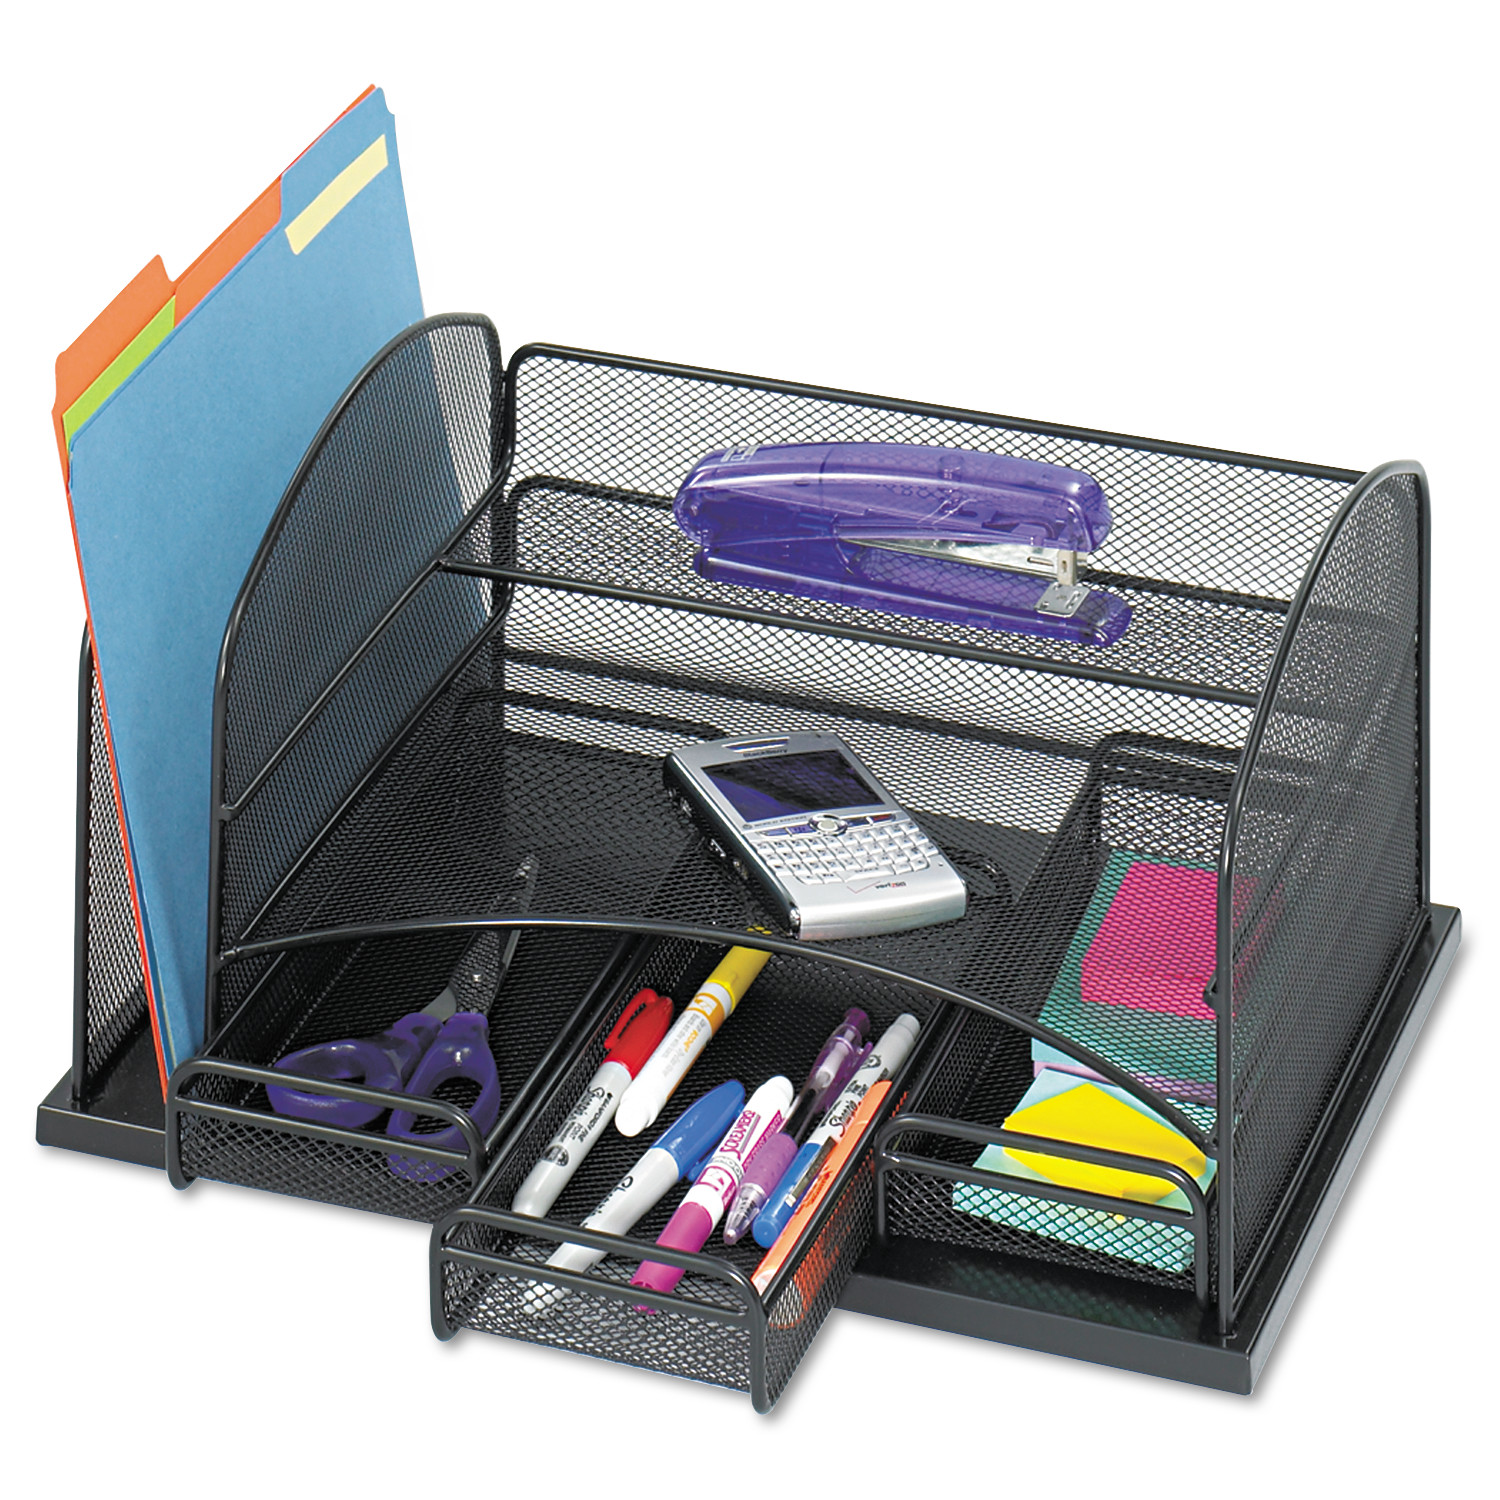 Safco Three Drawer Organizer Steel X X Black